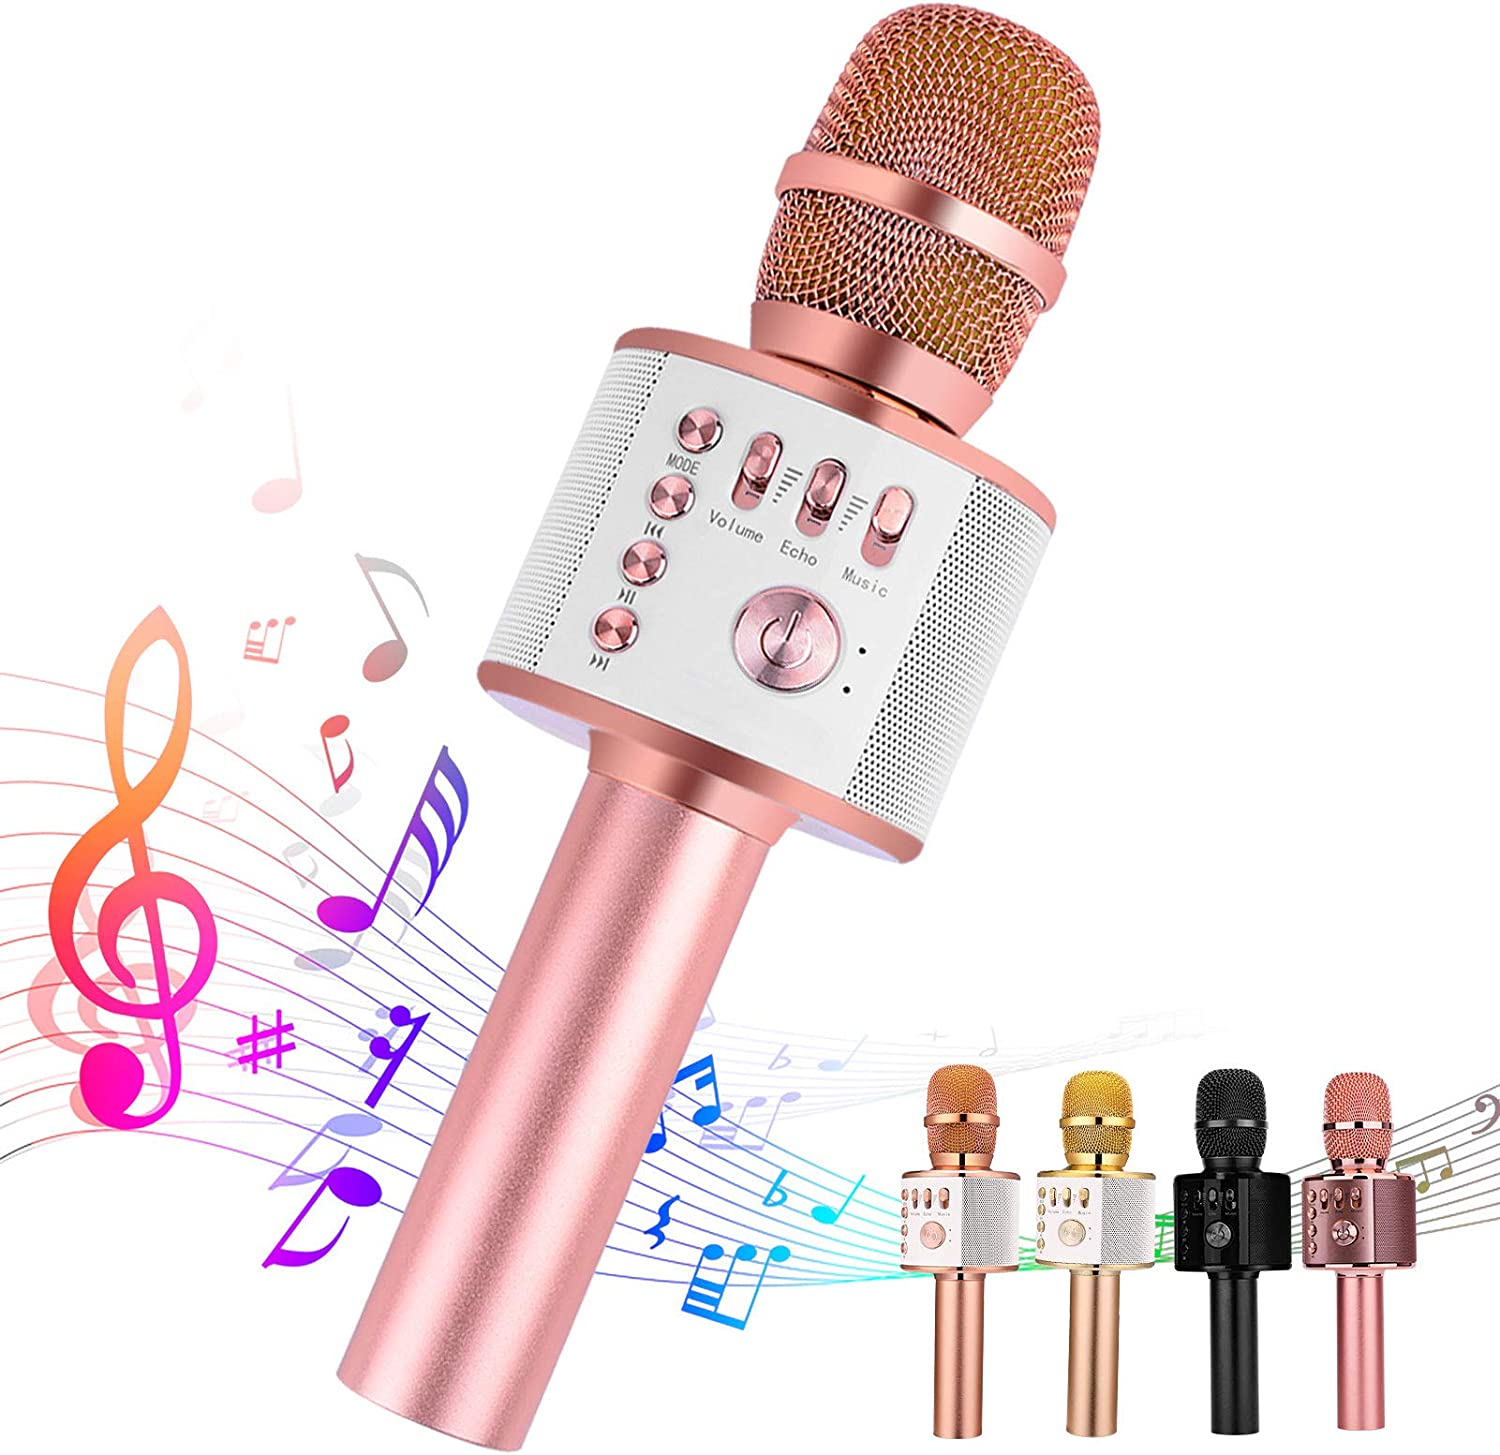 Q9 Gold Wireless Karaoke Microphone Besteker Portable Bluetooth Speaker Machine for iPhone Android PC and Smartphone